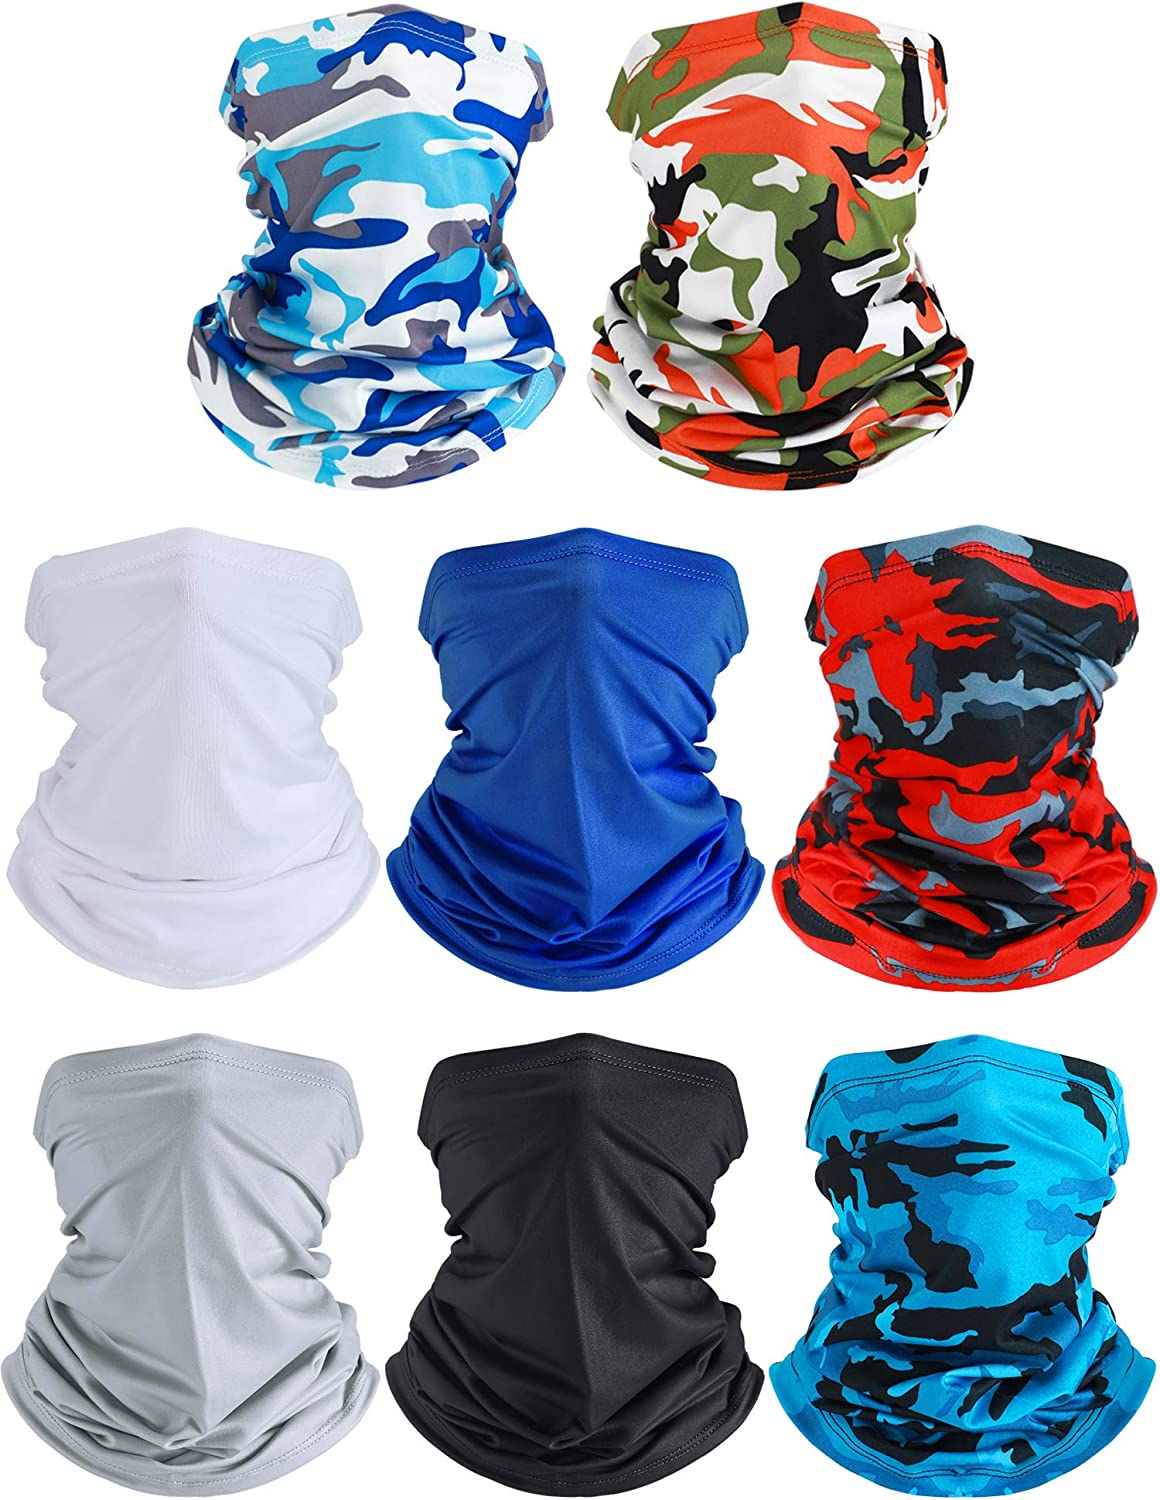 Summer UV Protection Neck Gaiter Scarf Balaclava Breathable Face Cover Scarf (Camouflage Colors and Solid Colors, 8)